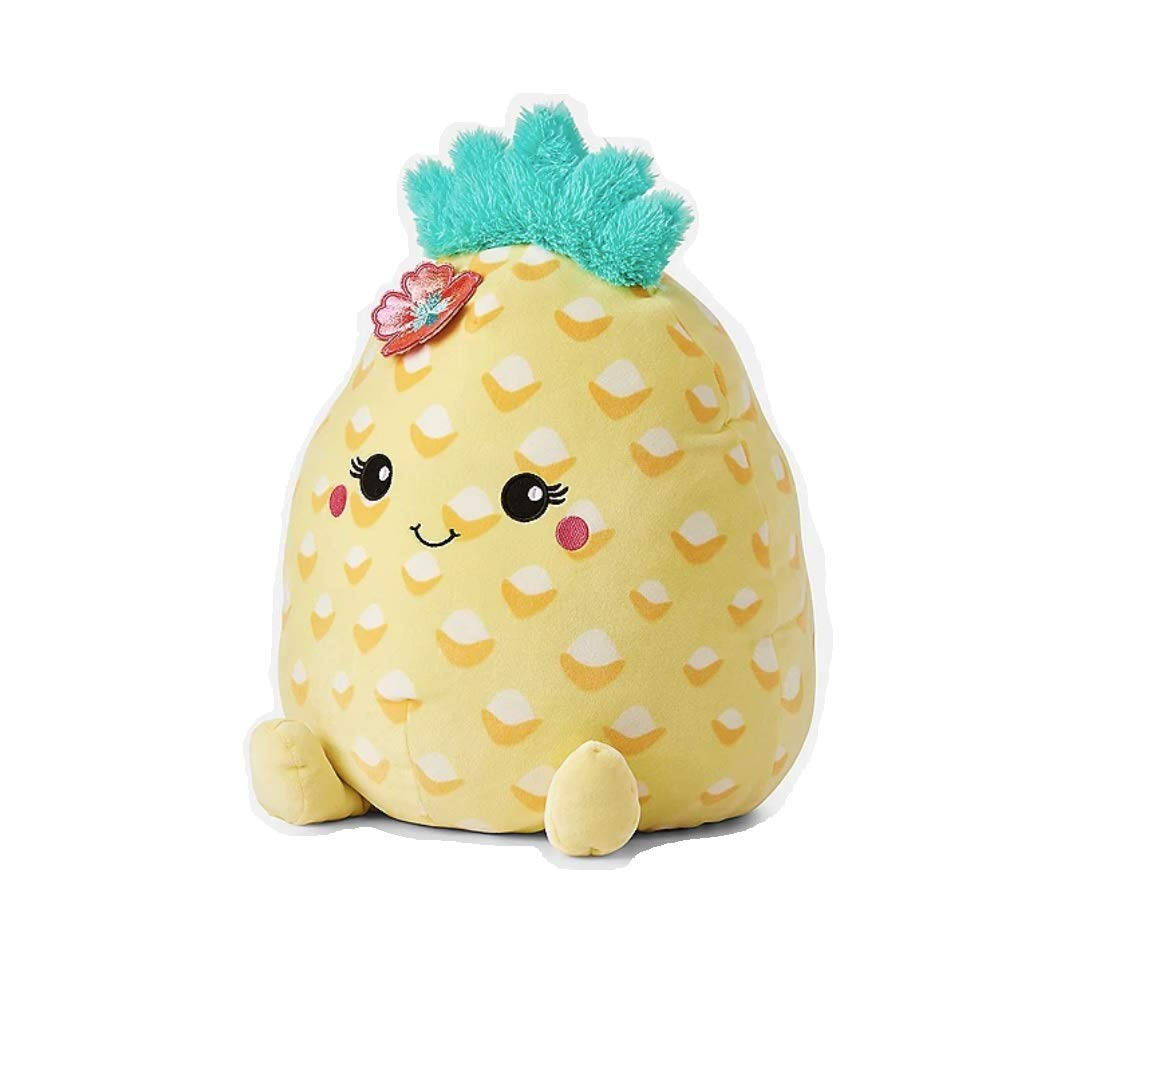 Justice Squishmallow 16'' Large Summer The Pineapple Yellow Super Soft Plush Pillow Stuffed Animal